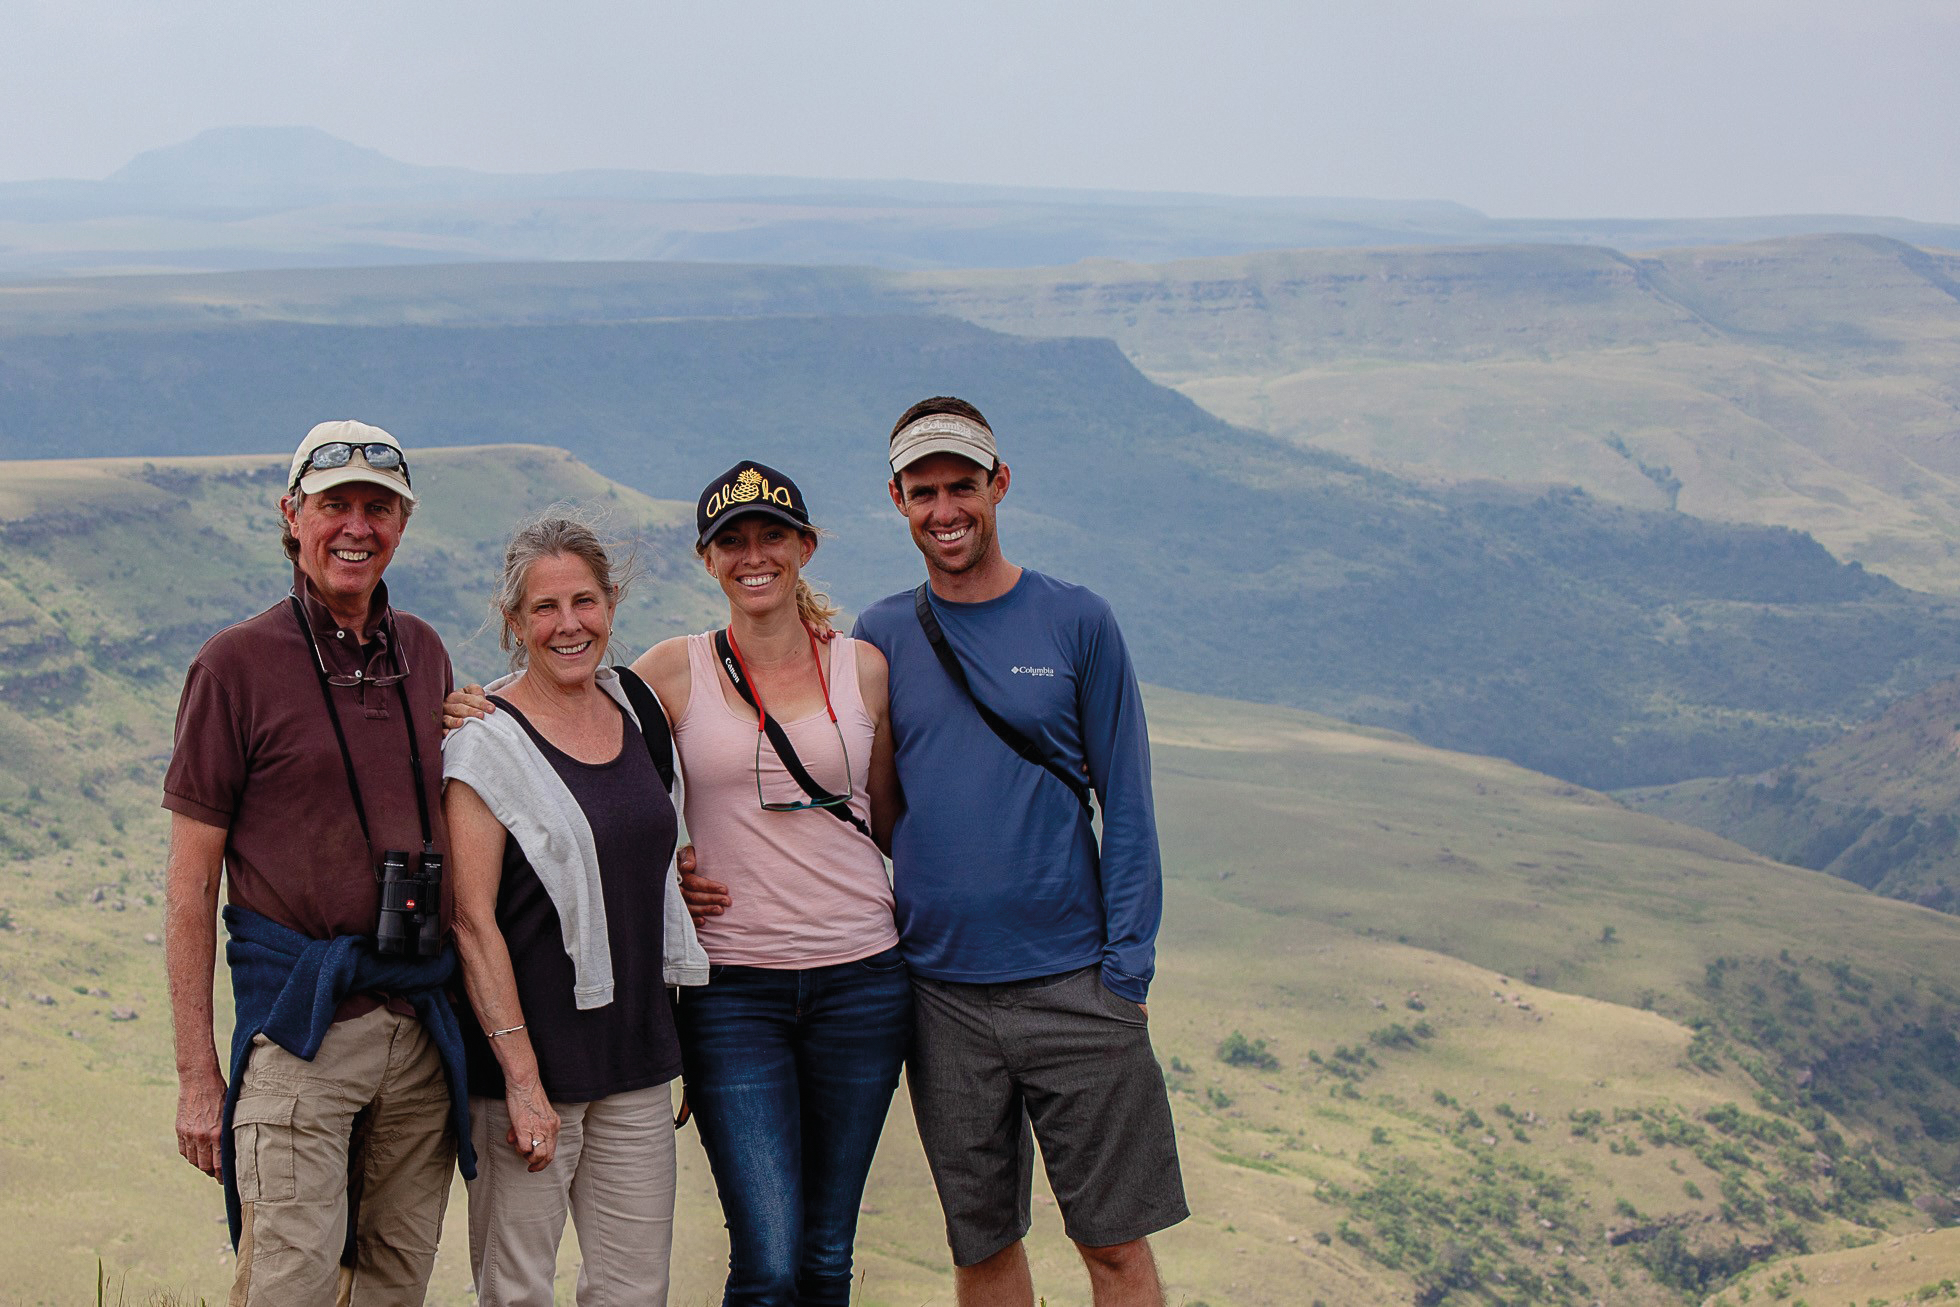 Sally Keating '72 (second from left) and her husband, Michael, visited their daughter, Clare, and son-in-law, Ryan, in South Africa.